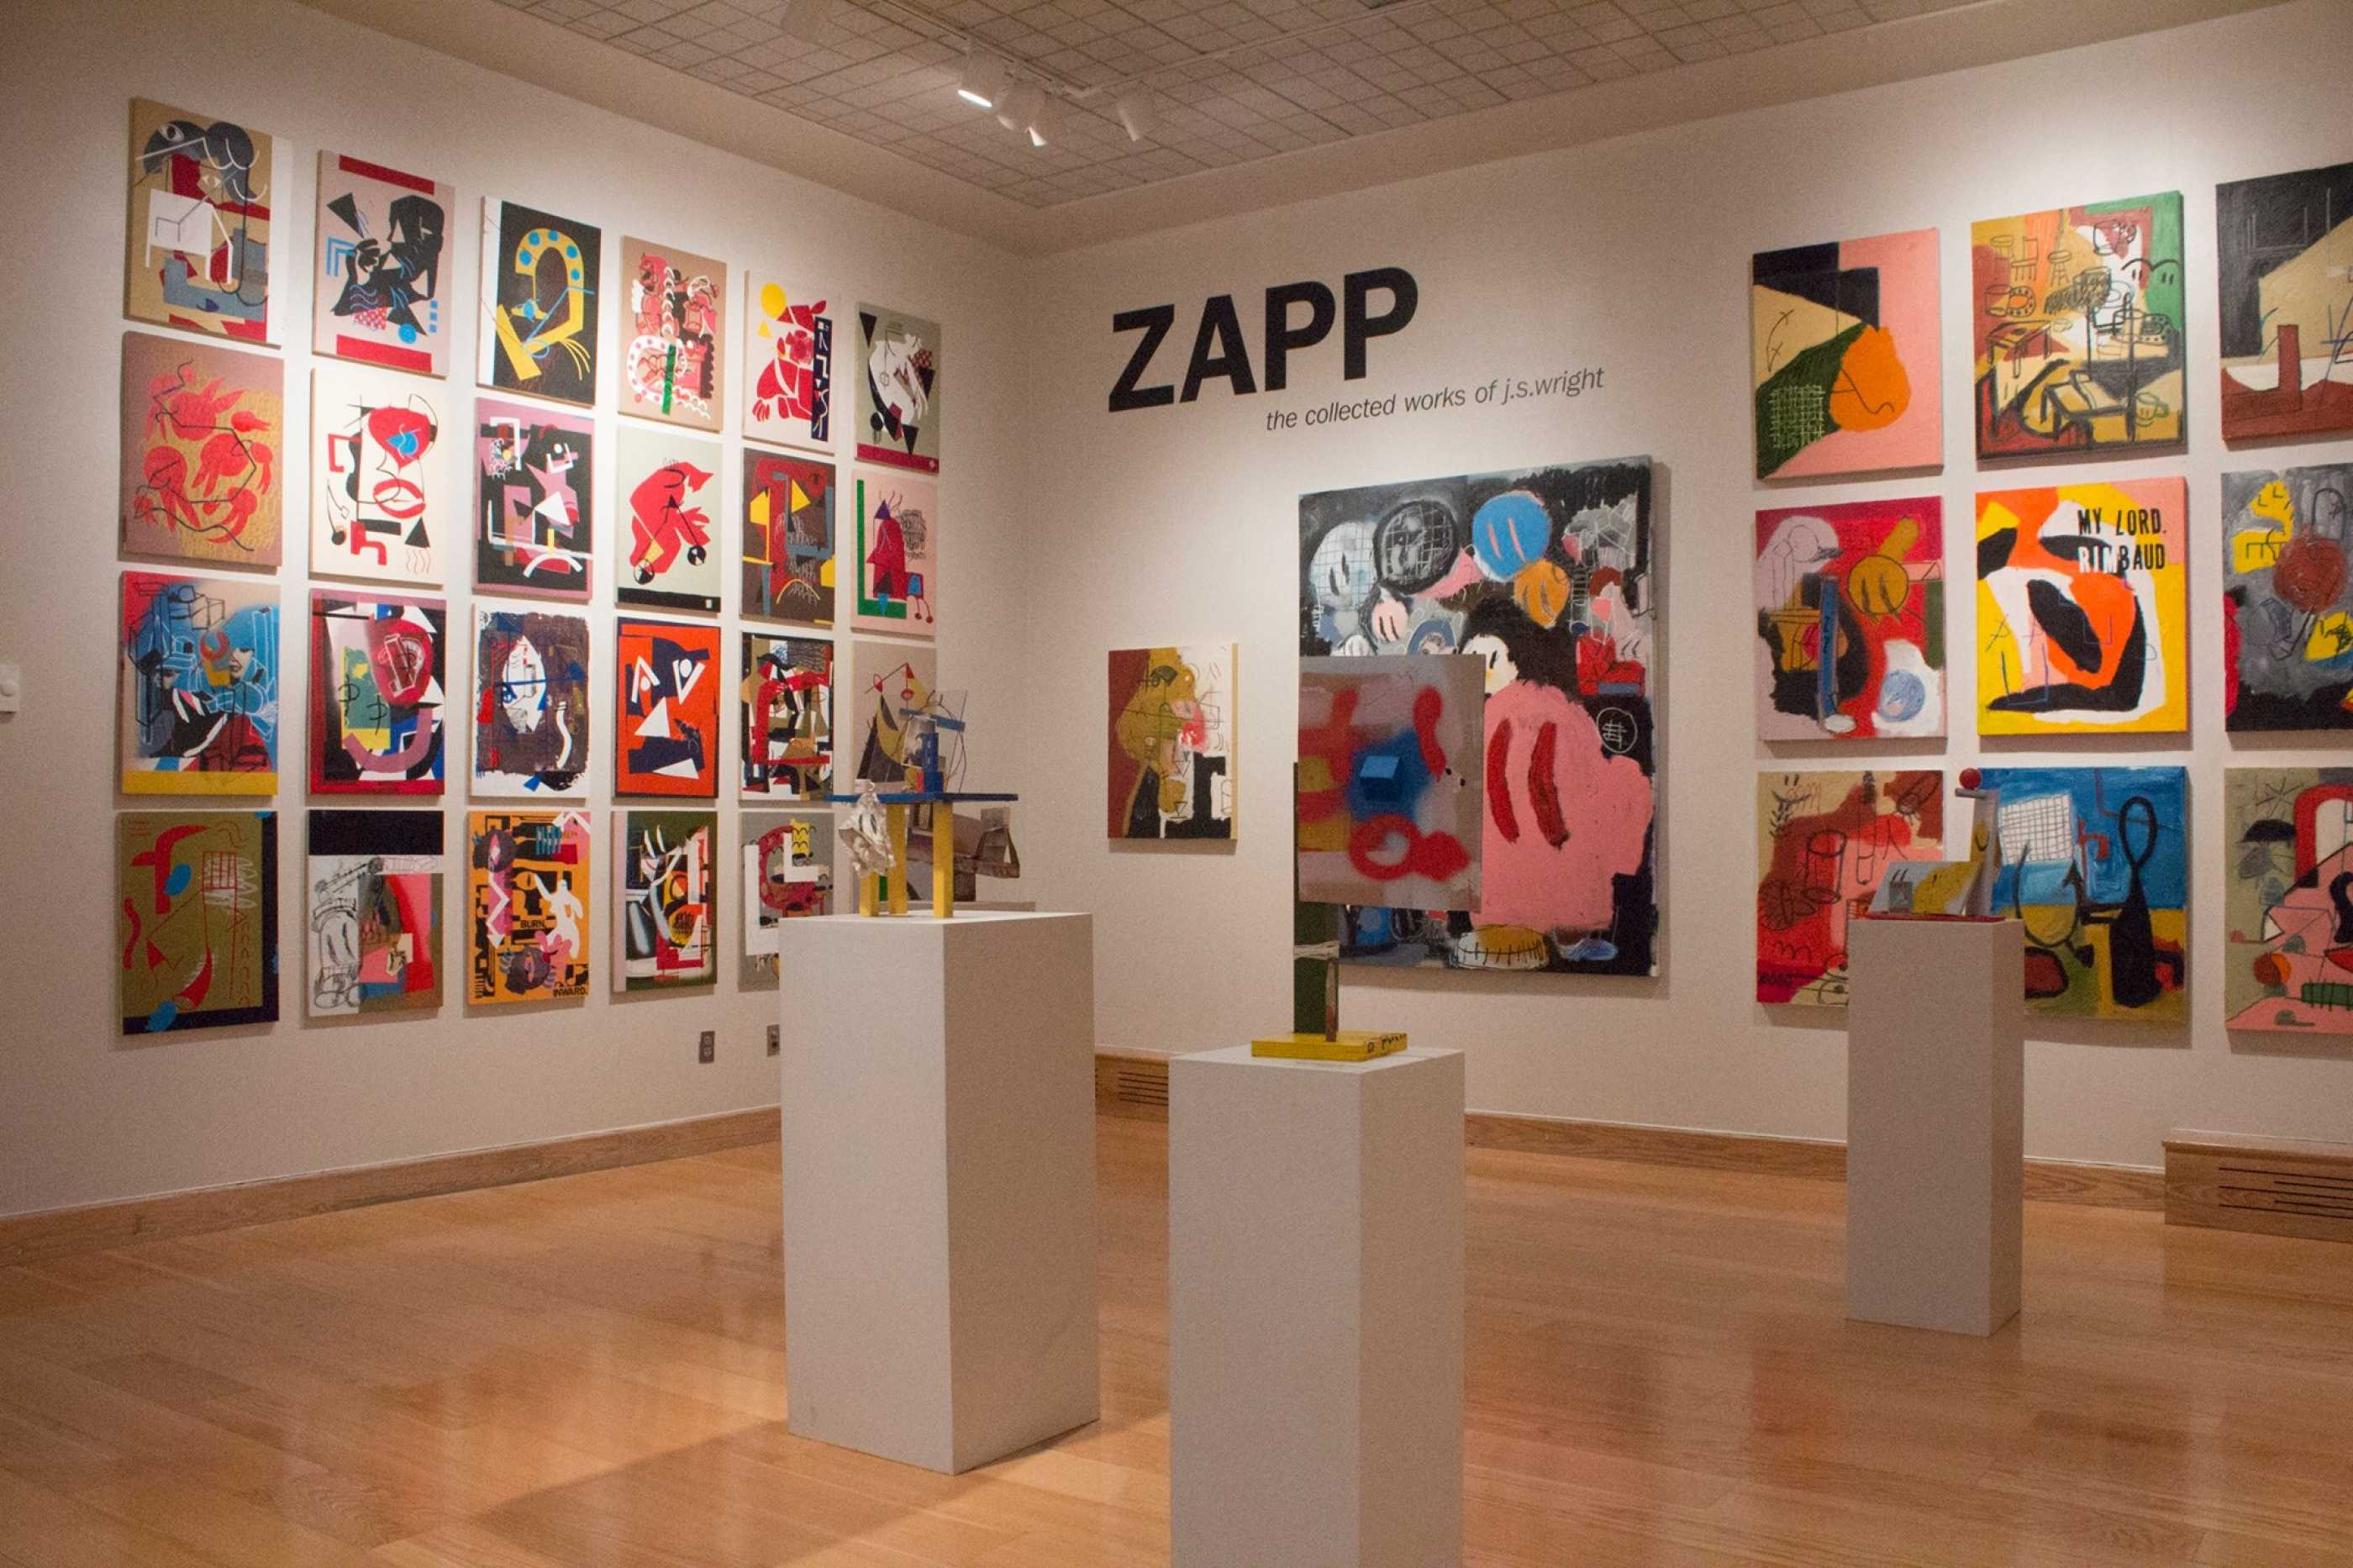 ZAP exhibition at Looking Glass Gallery